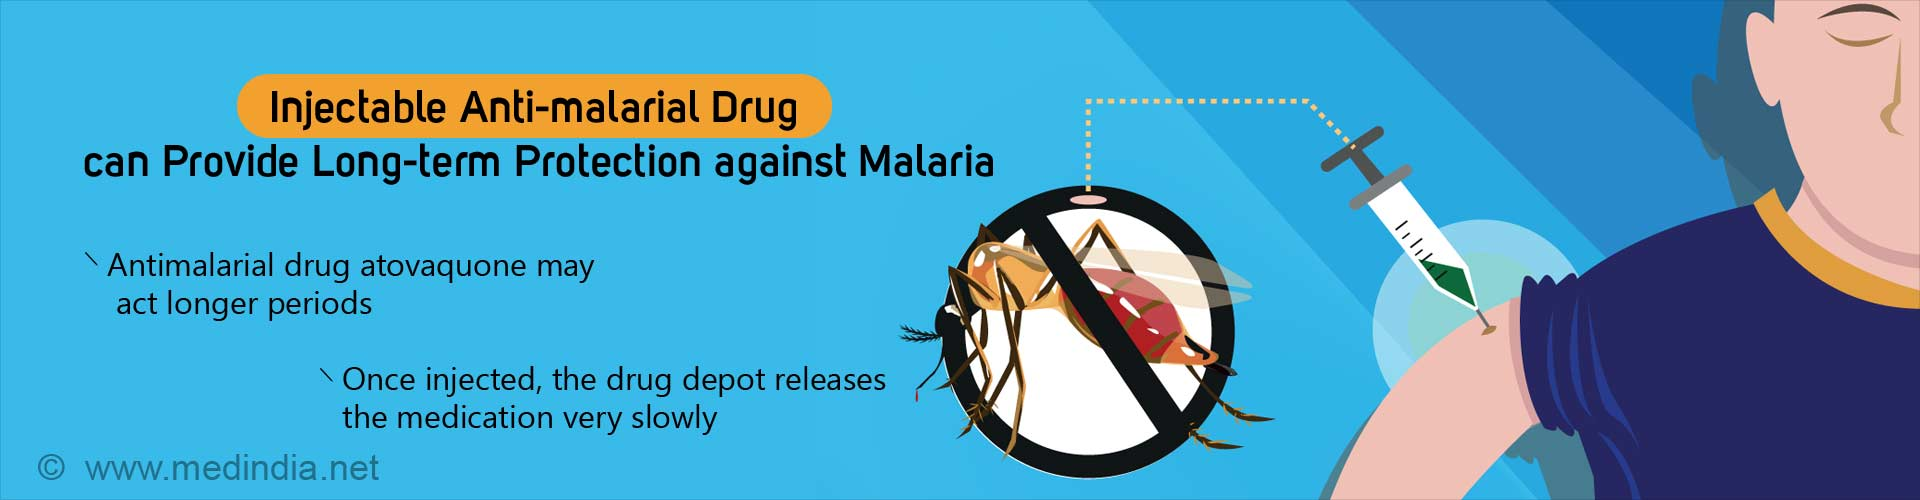 injectable anti-malarial drug can provide long-term protection against malaria